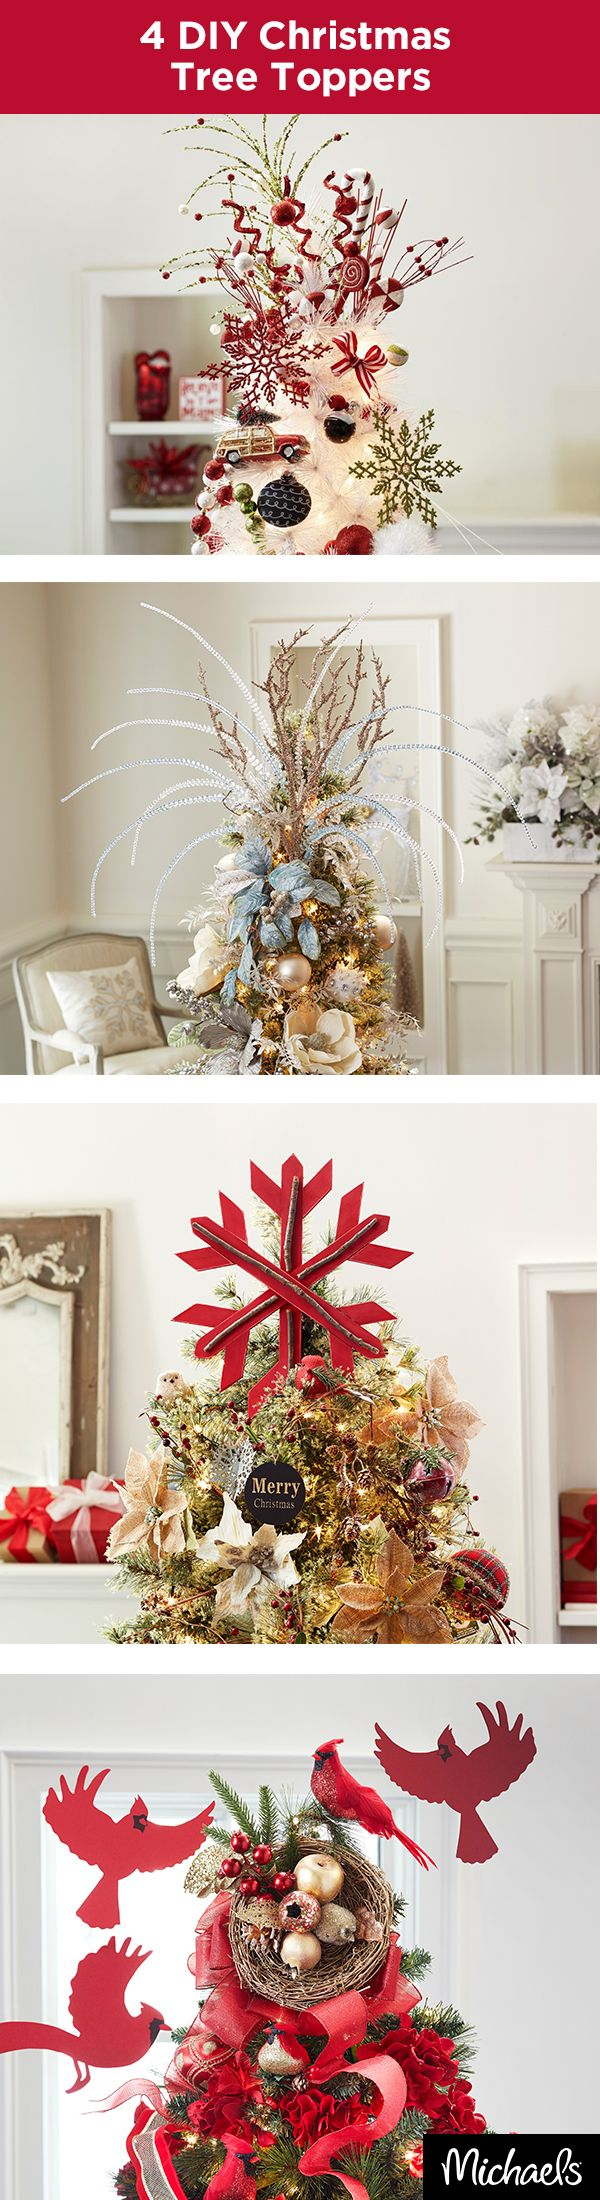 Craft A Unique Topper For Your Christmas Tree This Holiday Season Use Colors And Elements From Your D Cor Theme To Make Something That Really Stands Out